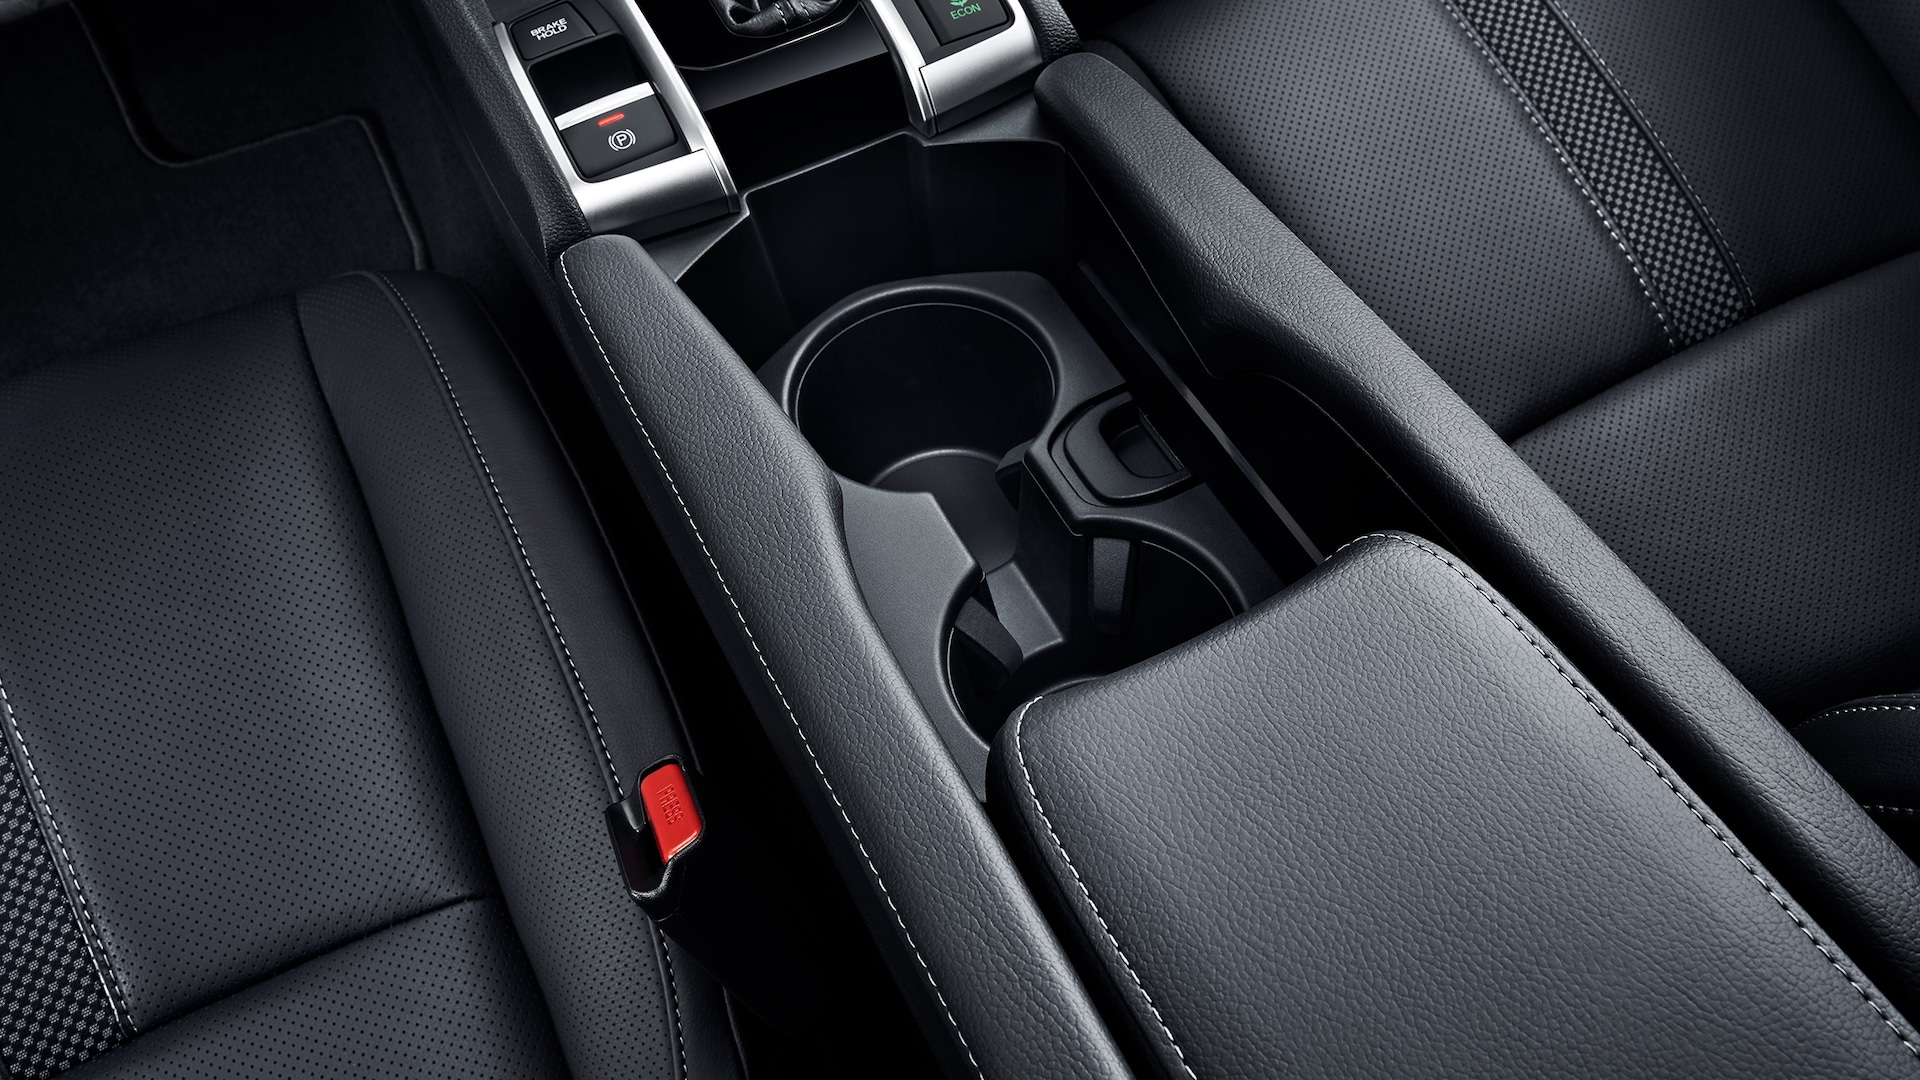 Detail of center console and beverage holders in the 2021 Honda Civic Touring Sedan shown with Black Leather.